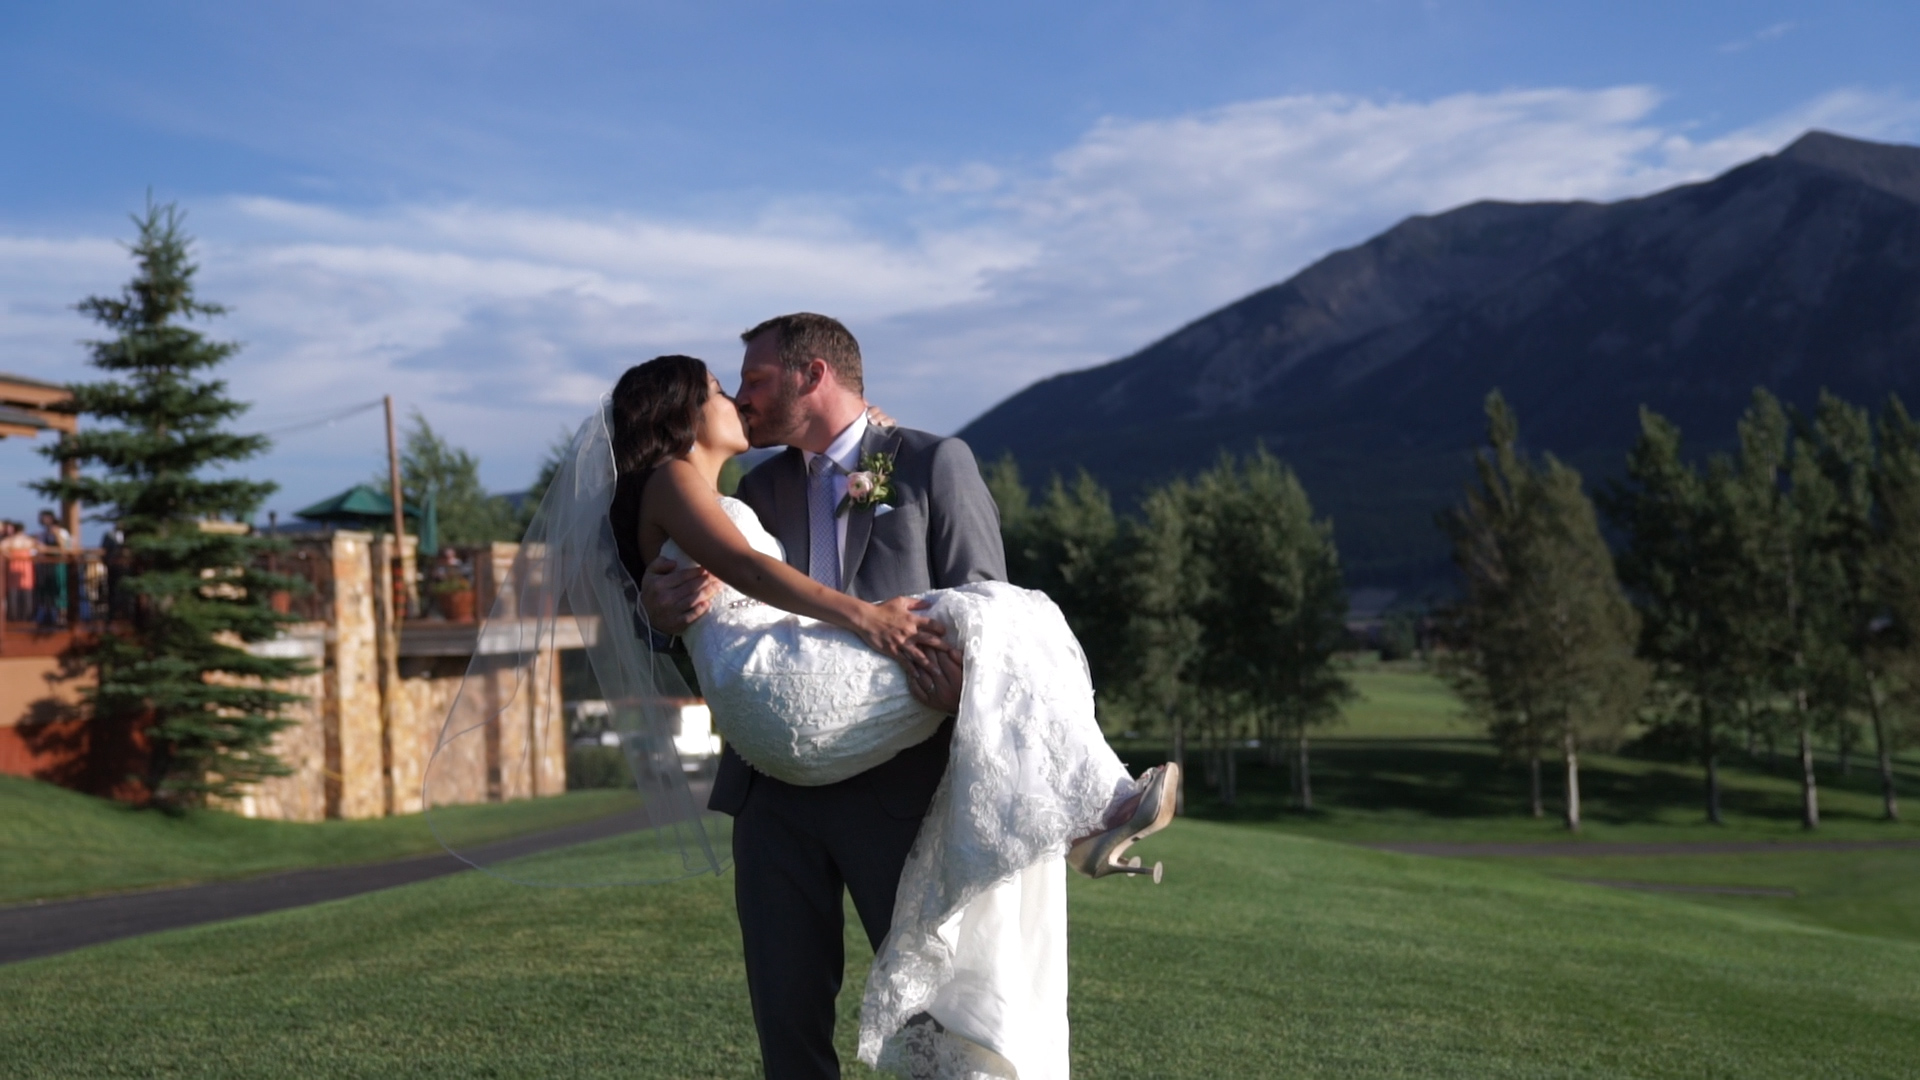 SOMOH MIKES DESTINATION WEDDING IN CRESTED BUTTE COLORADO